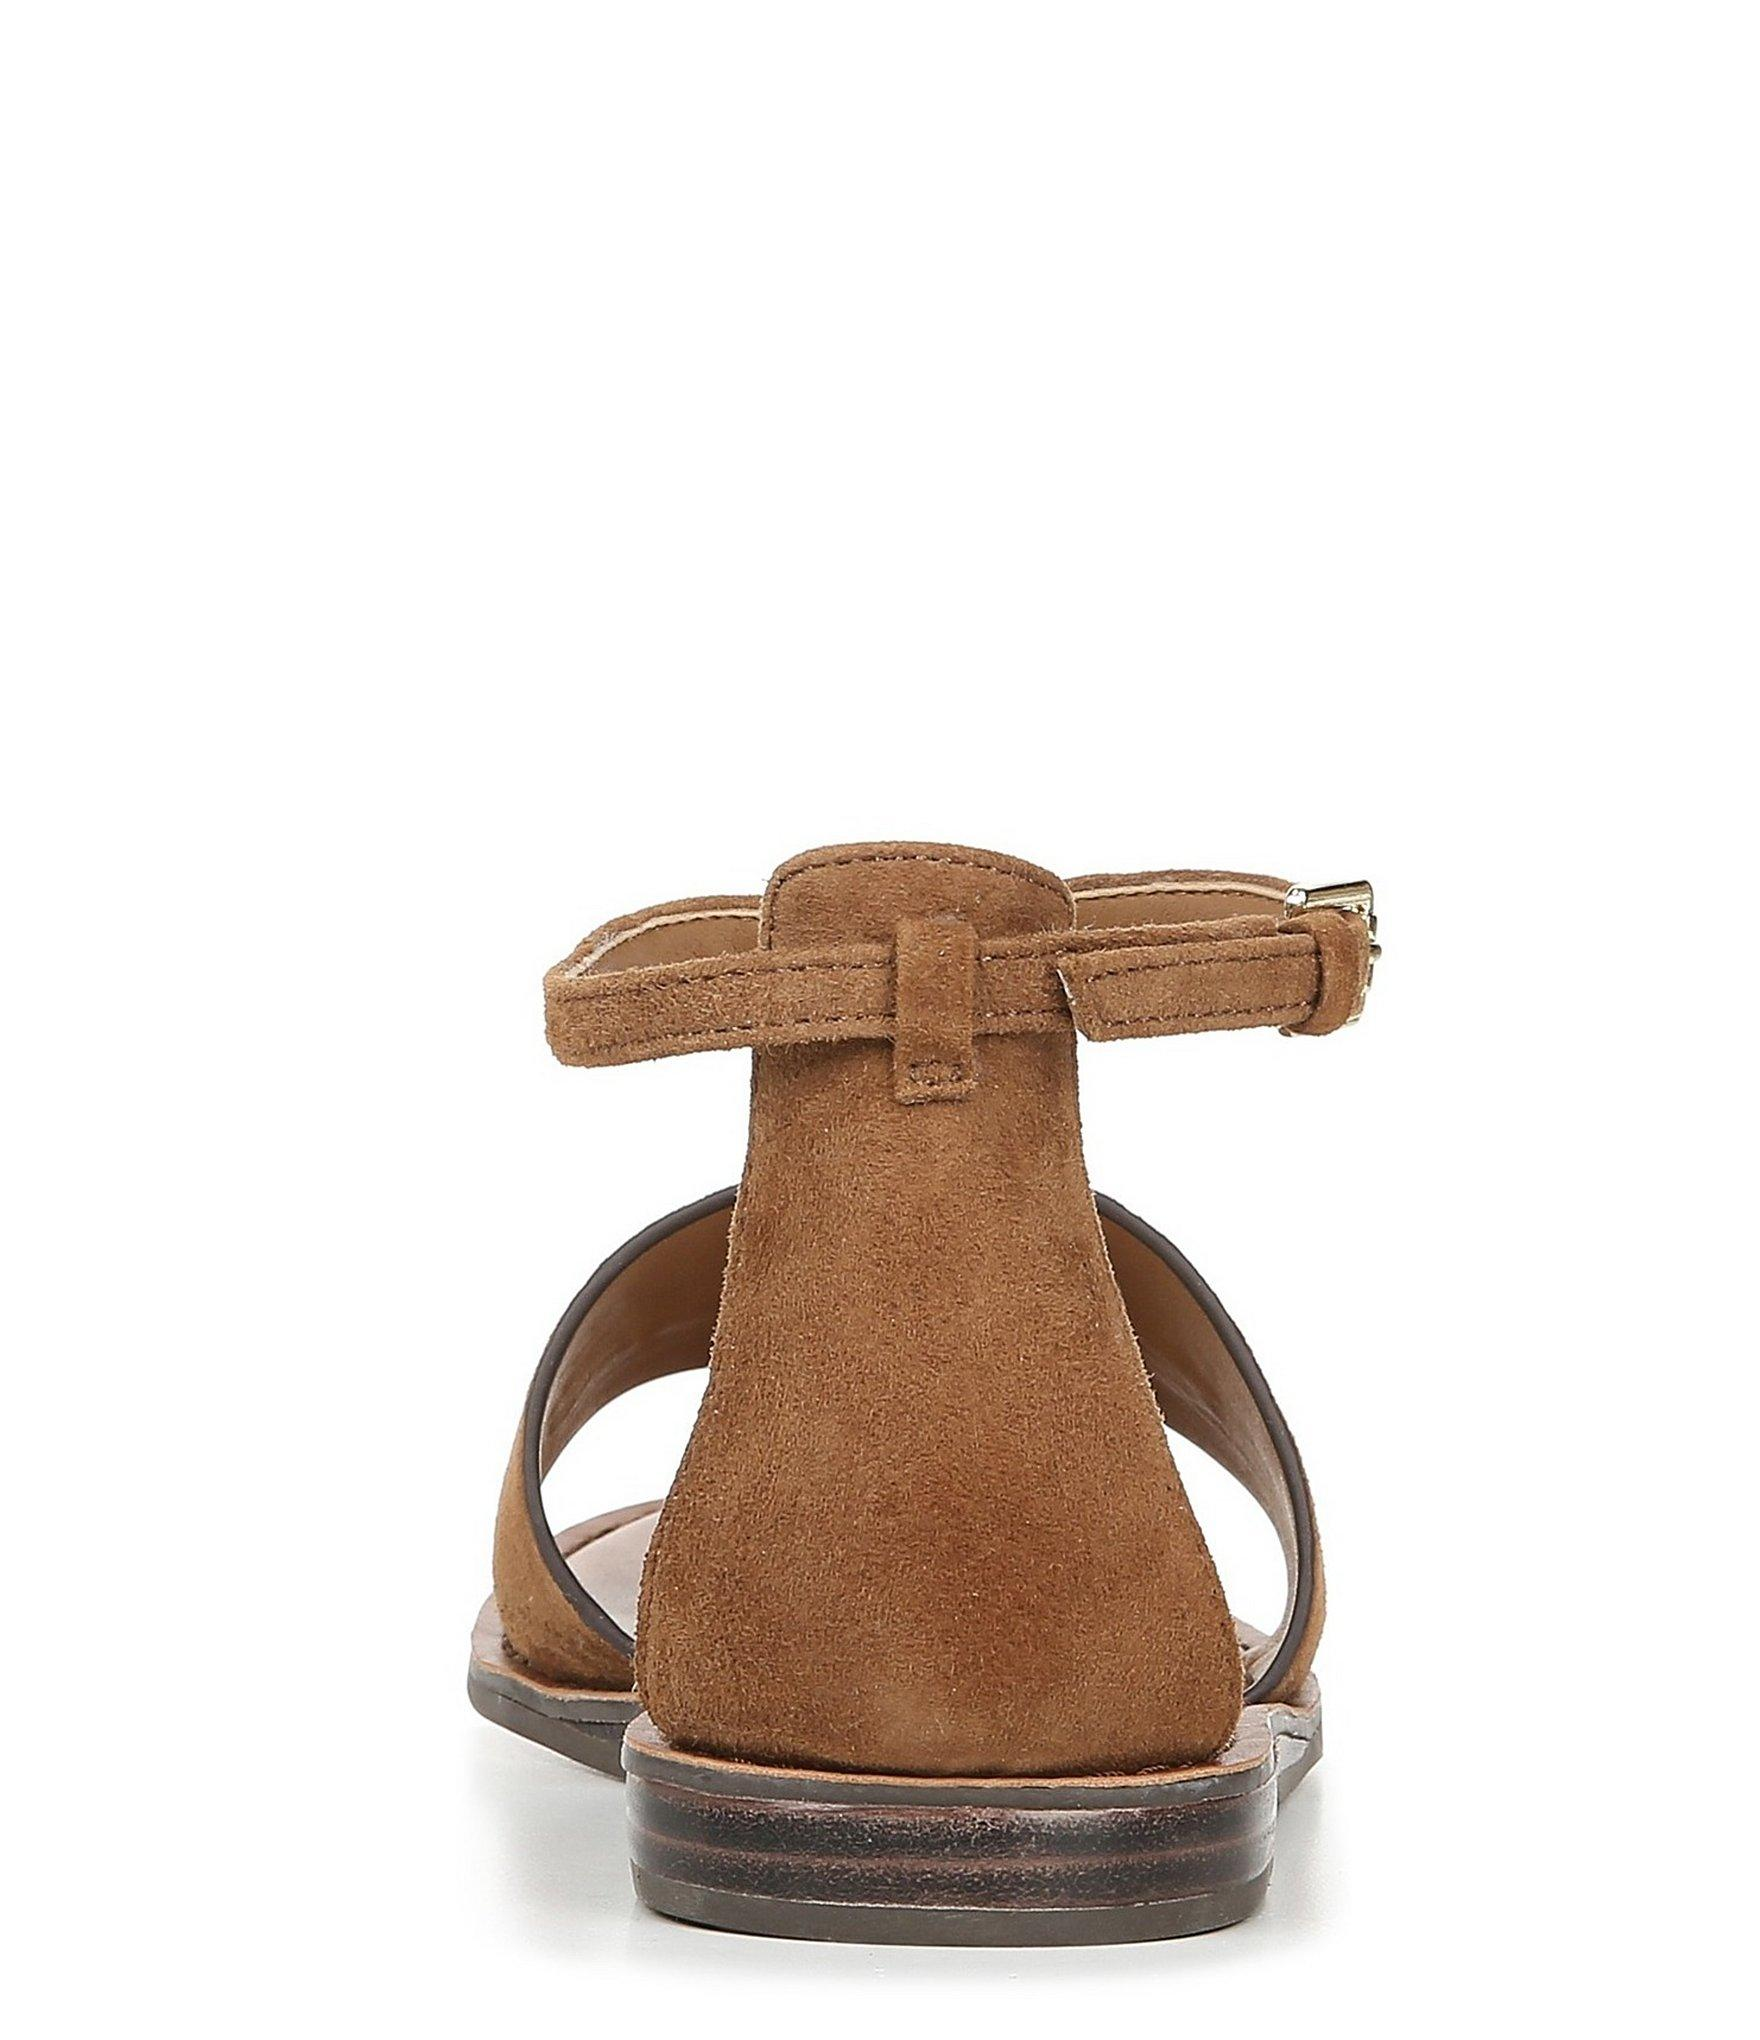 34241354c Franco Sarto - Brown Sarto By Lockheart Suede O-ring Sandals - Lyst. View  fullscreen